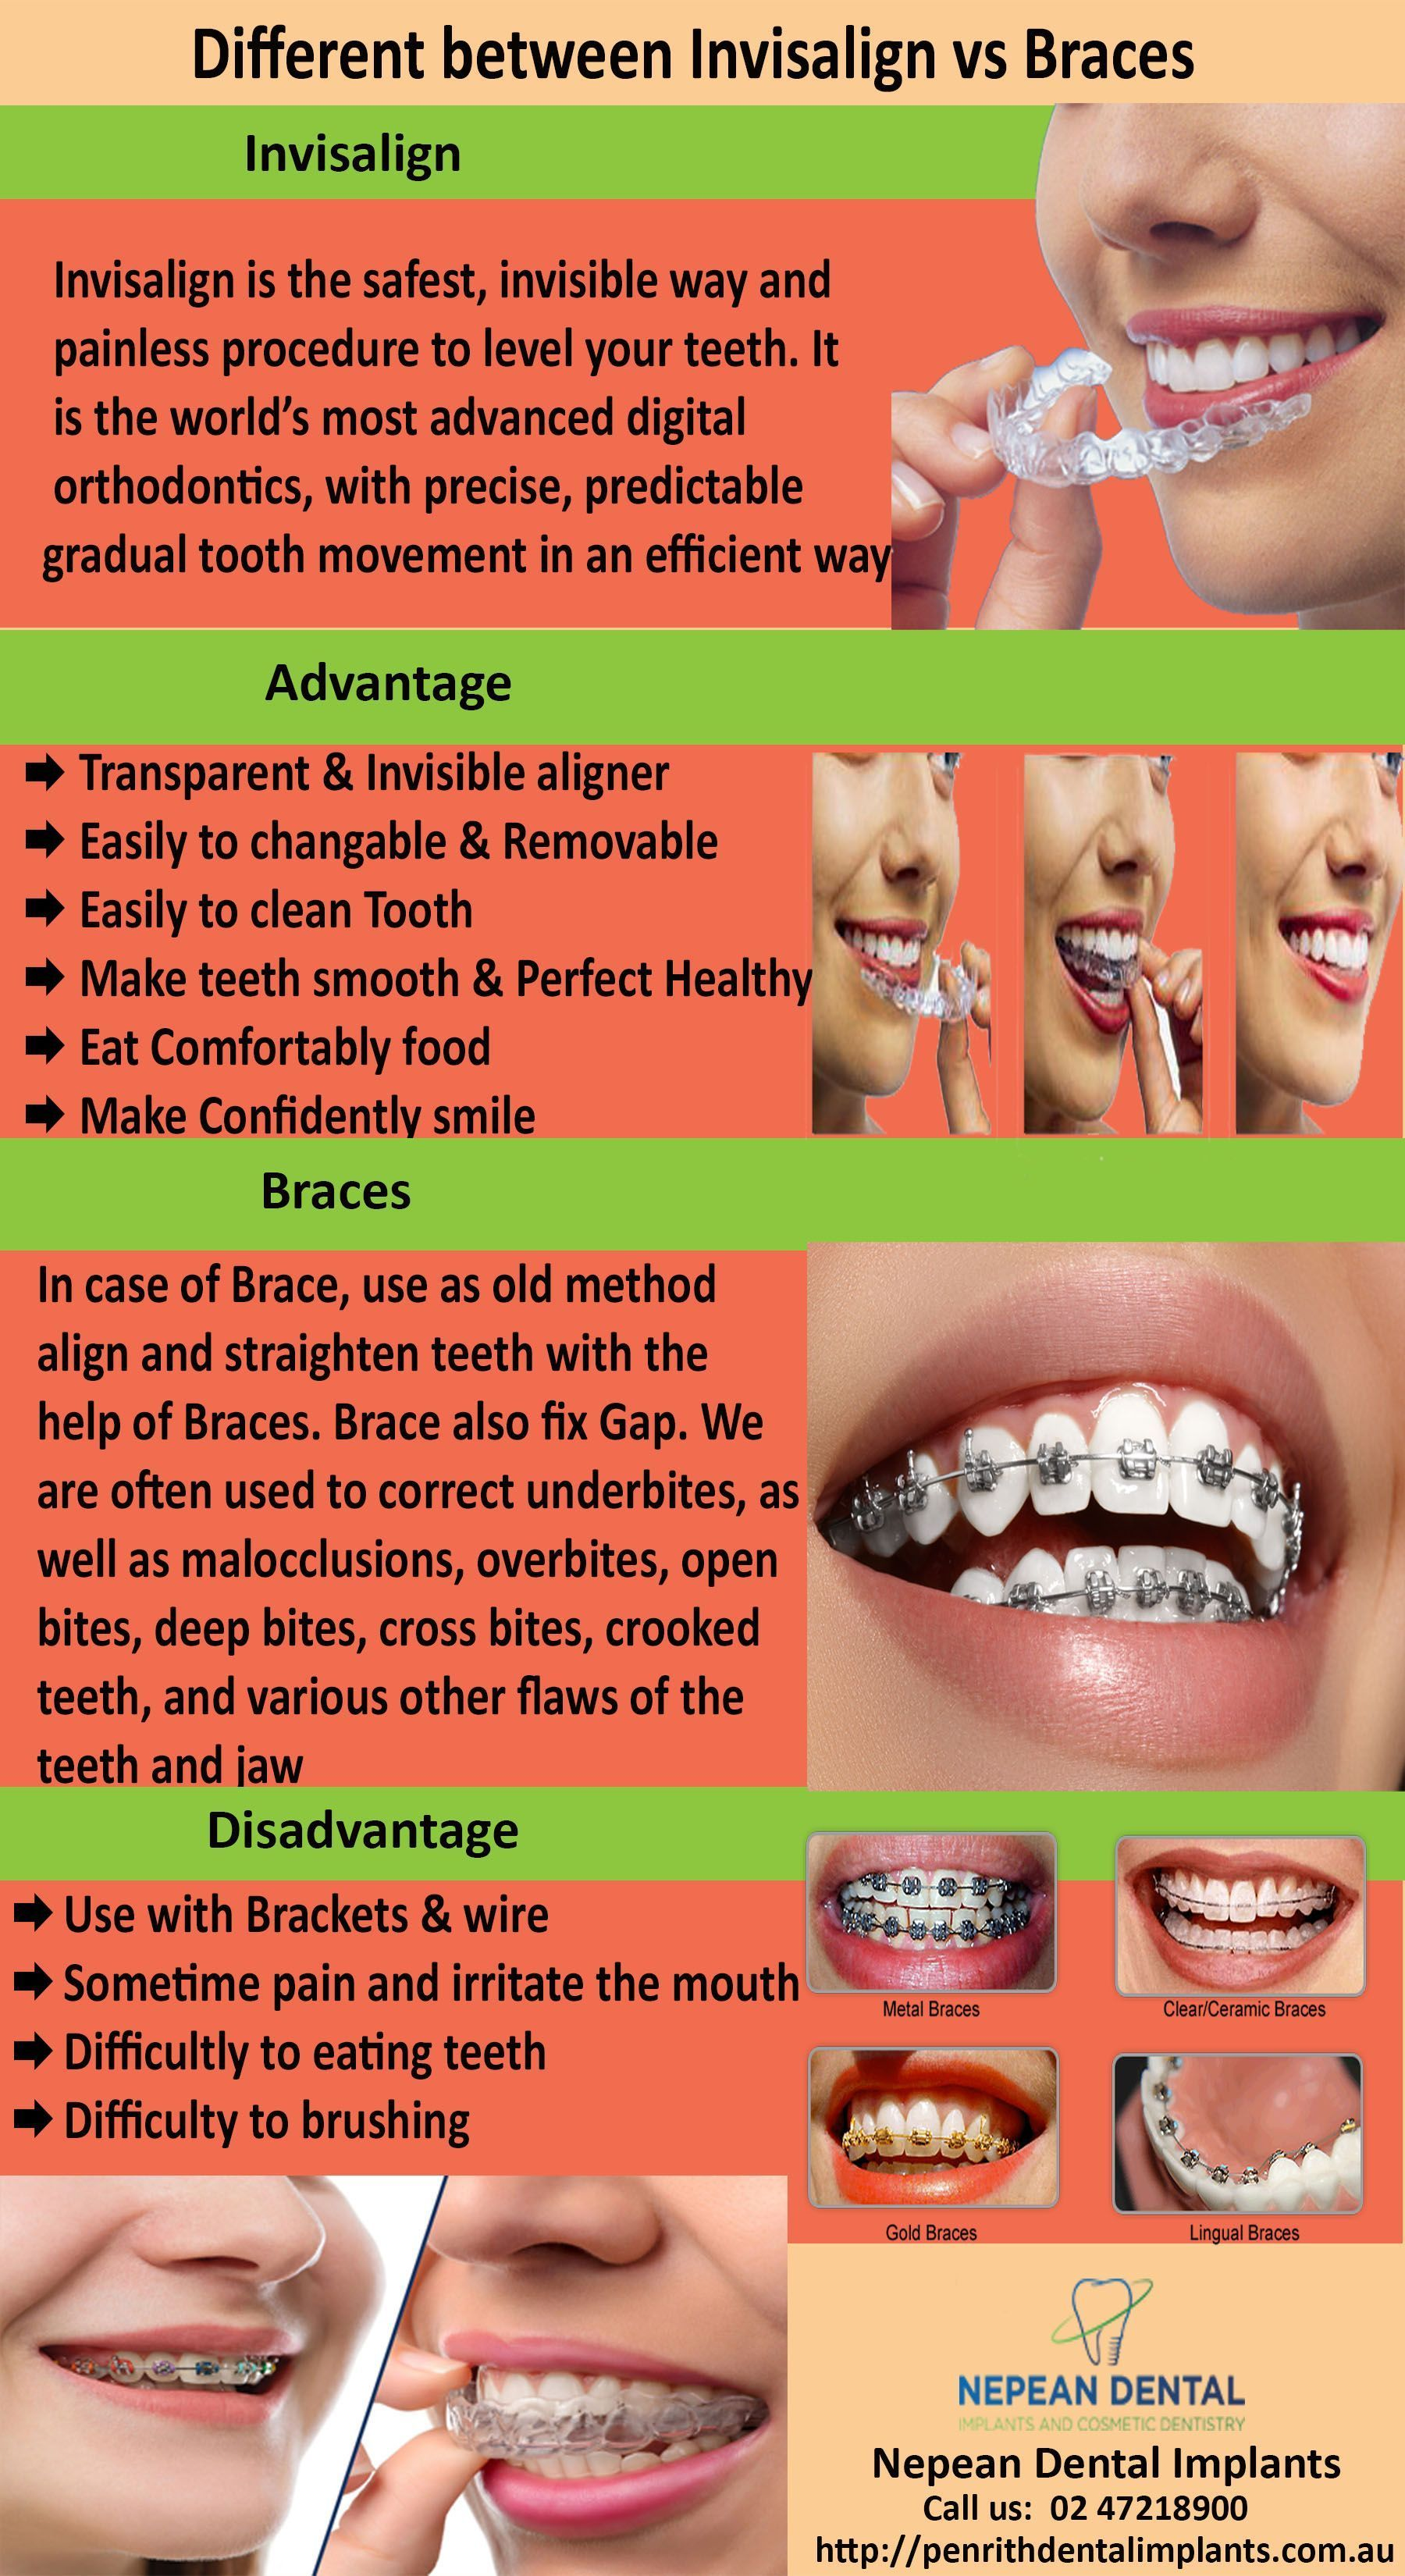 Hulking Tooth Implant To Get Dentiste Toothimplantother Invisalign Invisalign Vs Braces Invisalign Braces